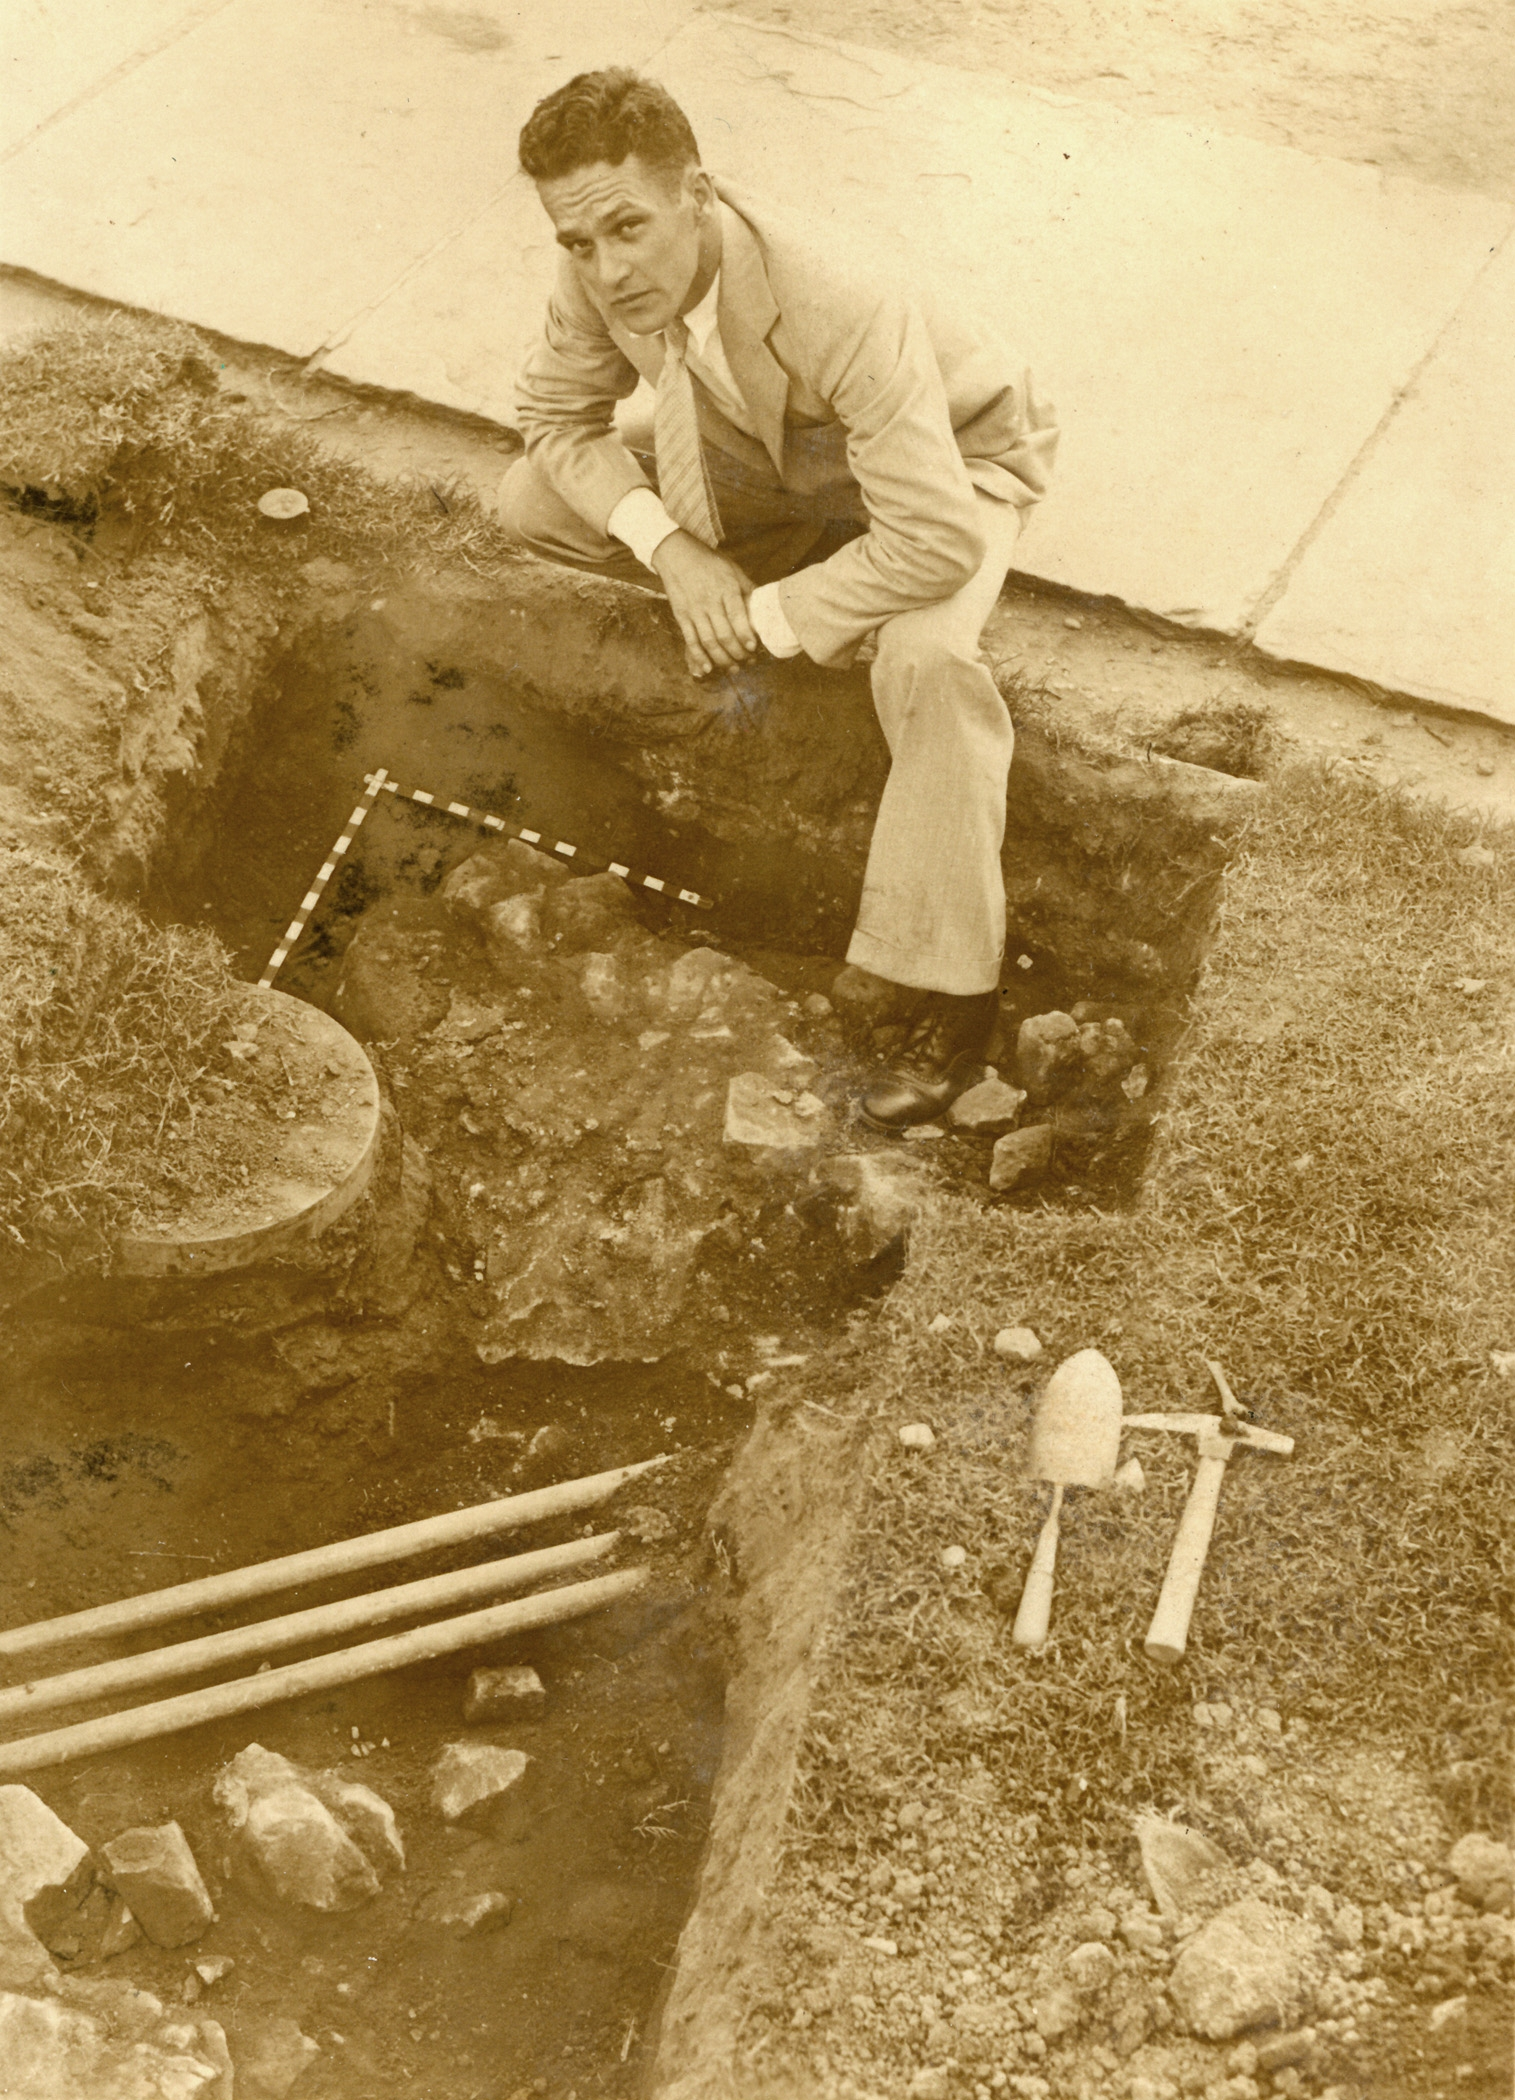 Charles Cecil Wall at an archeological site at Mount Vernon, 1931. Image courtesy of the Mount Vernon Ladies' Association.